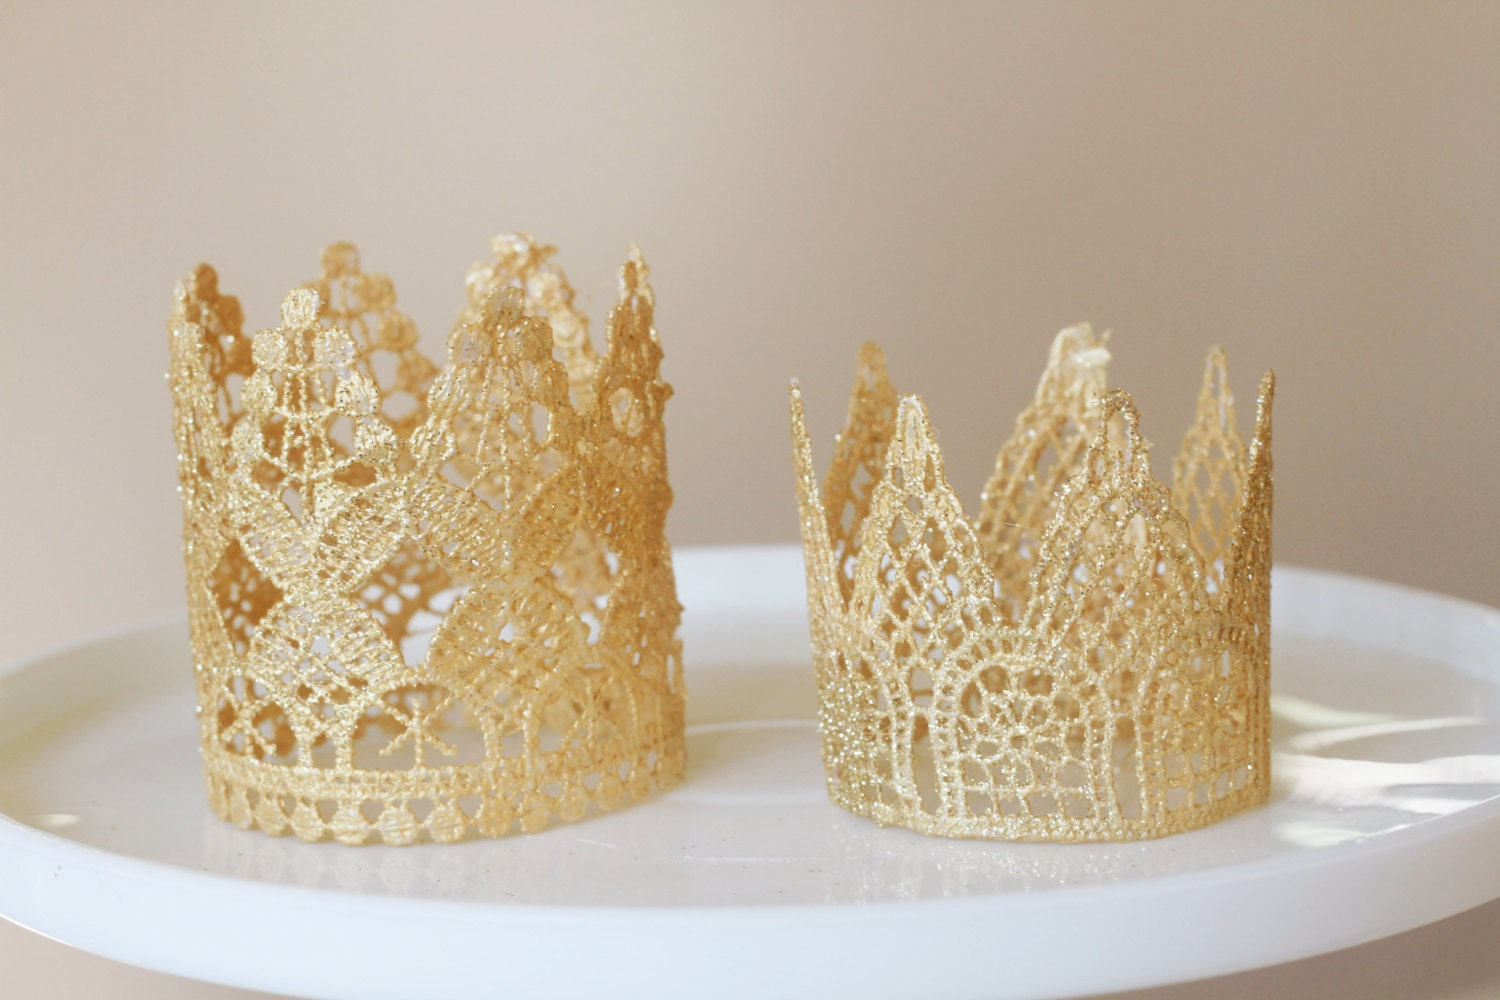 Cake Decoration Crown : Twins crown cake toppers prince and princess cake toppers